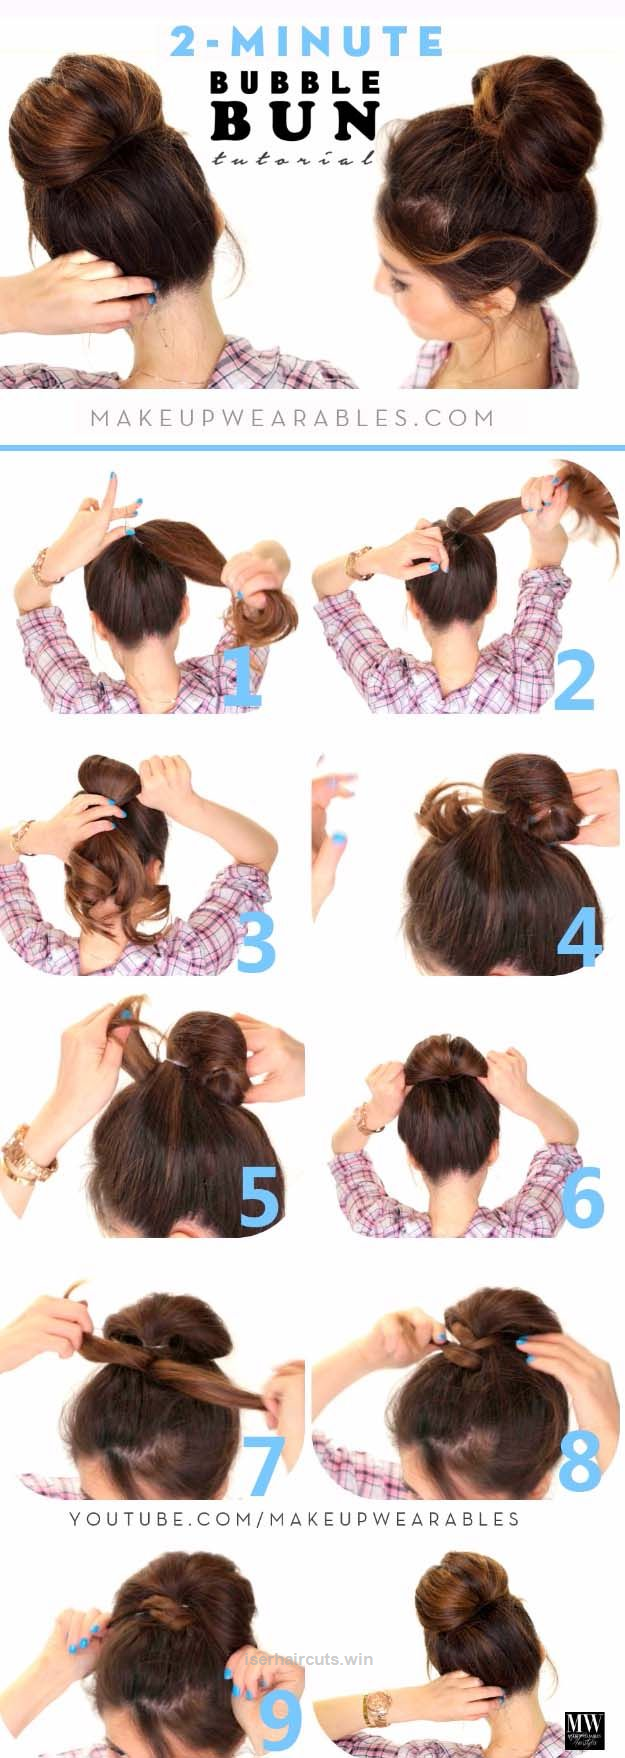 A cute messy bun for when you are going to swim chill or go